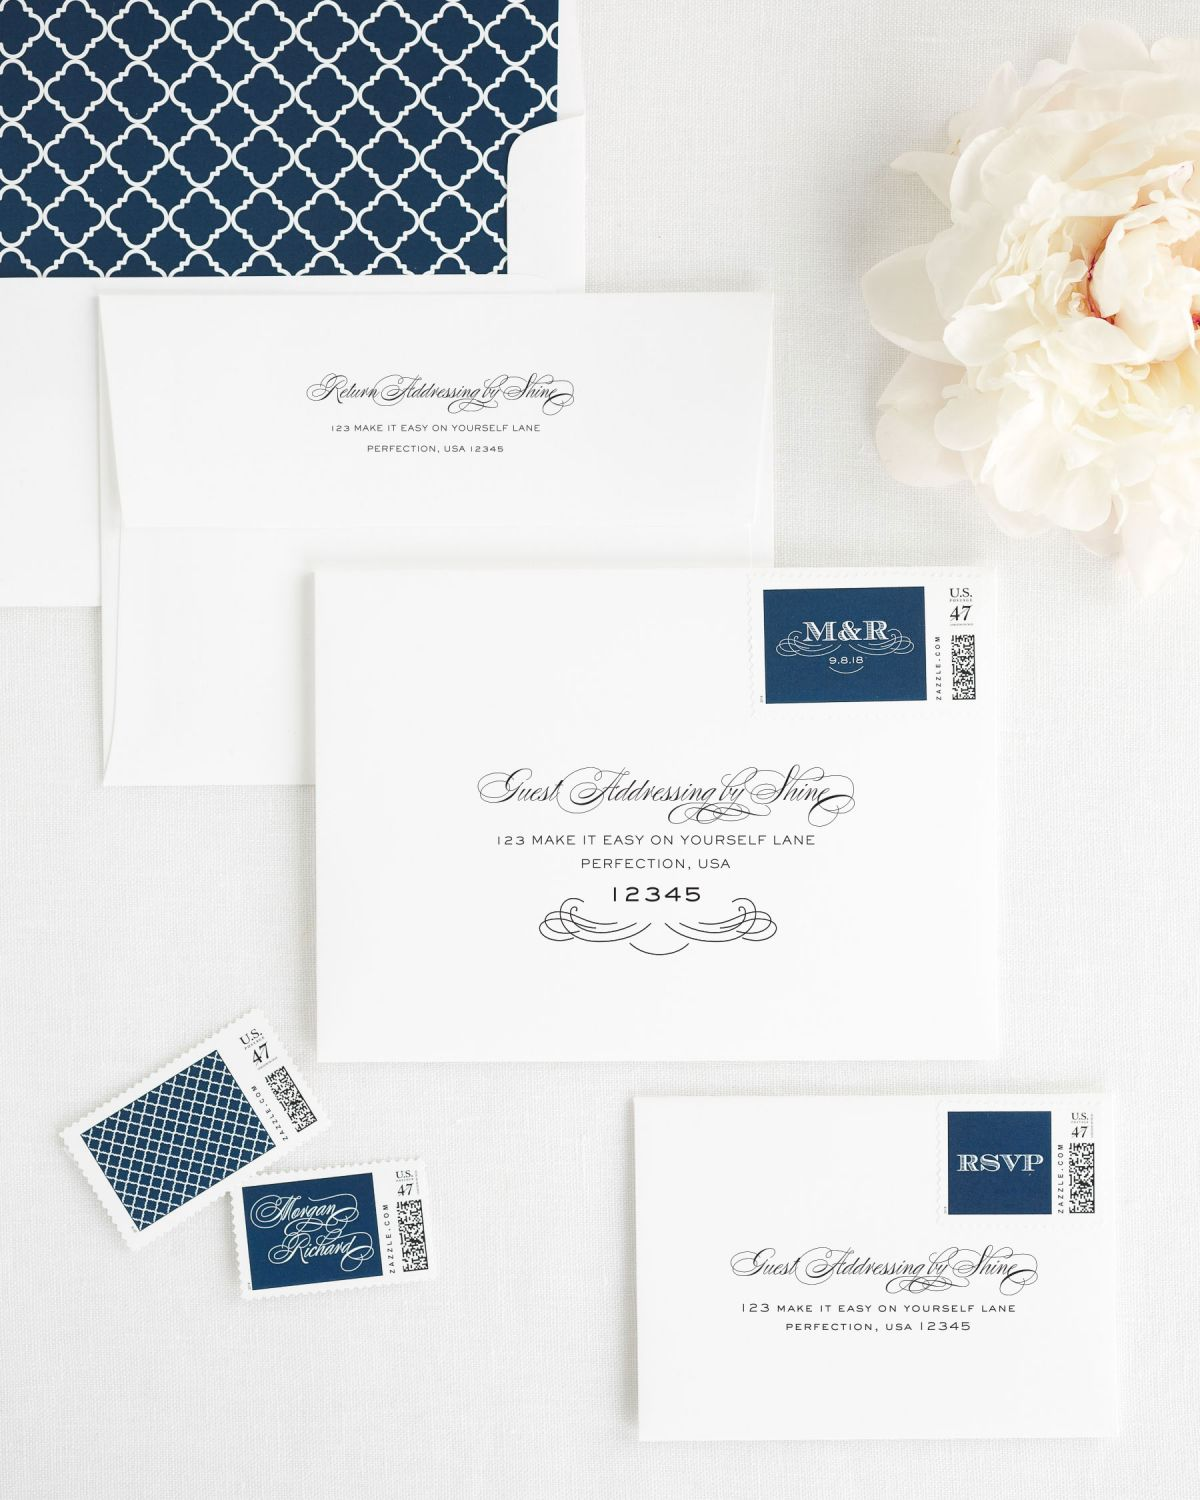 Wedding Invitation Envelopes with Digital Calligrpahy and Matching Stamps